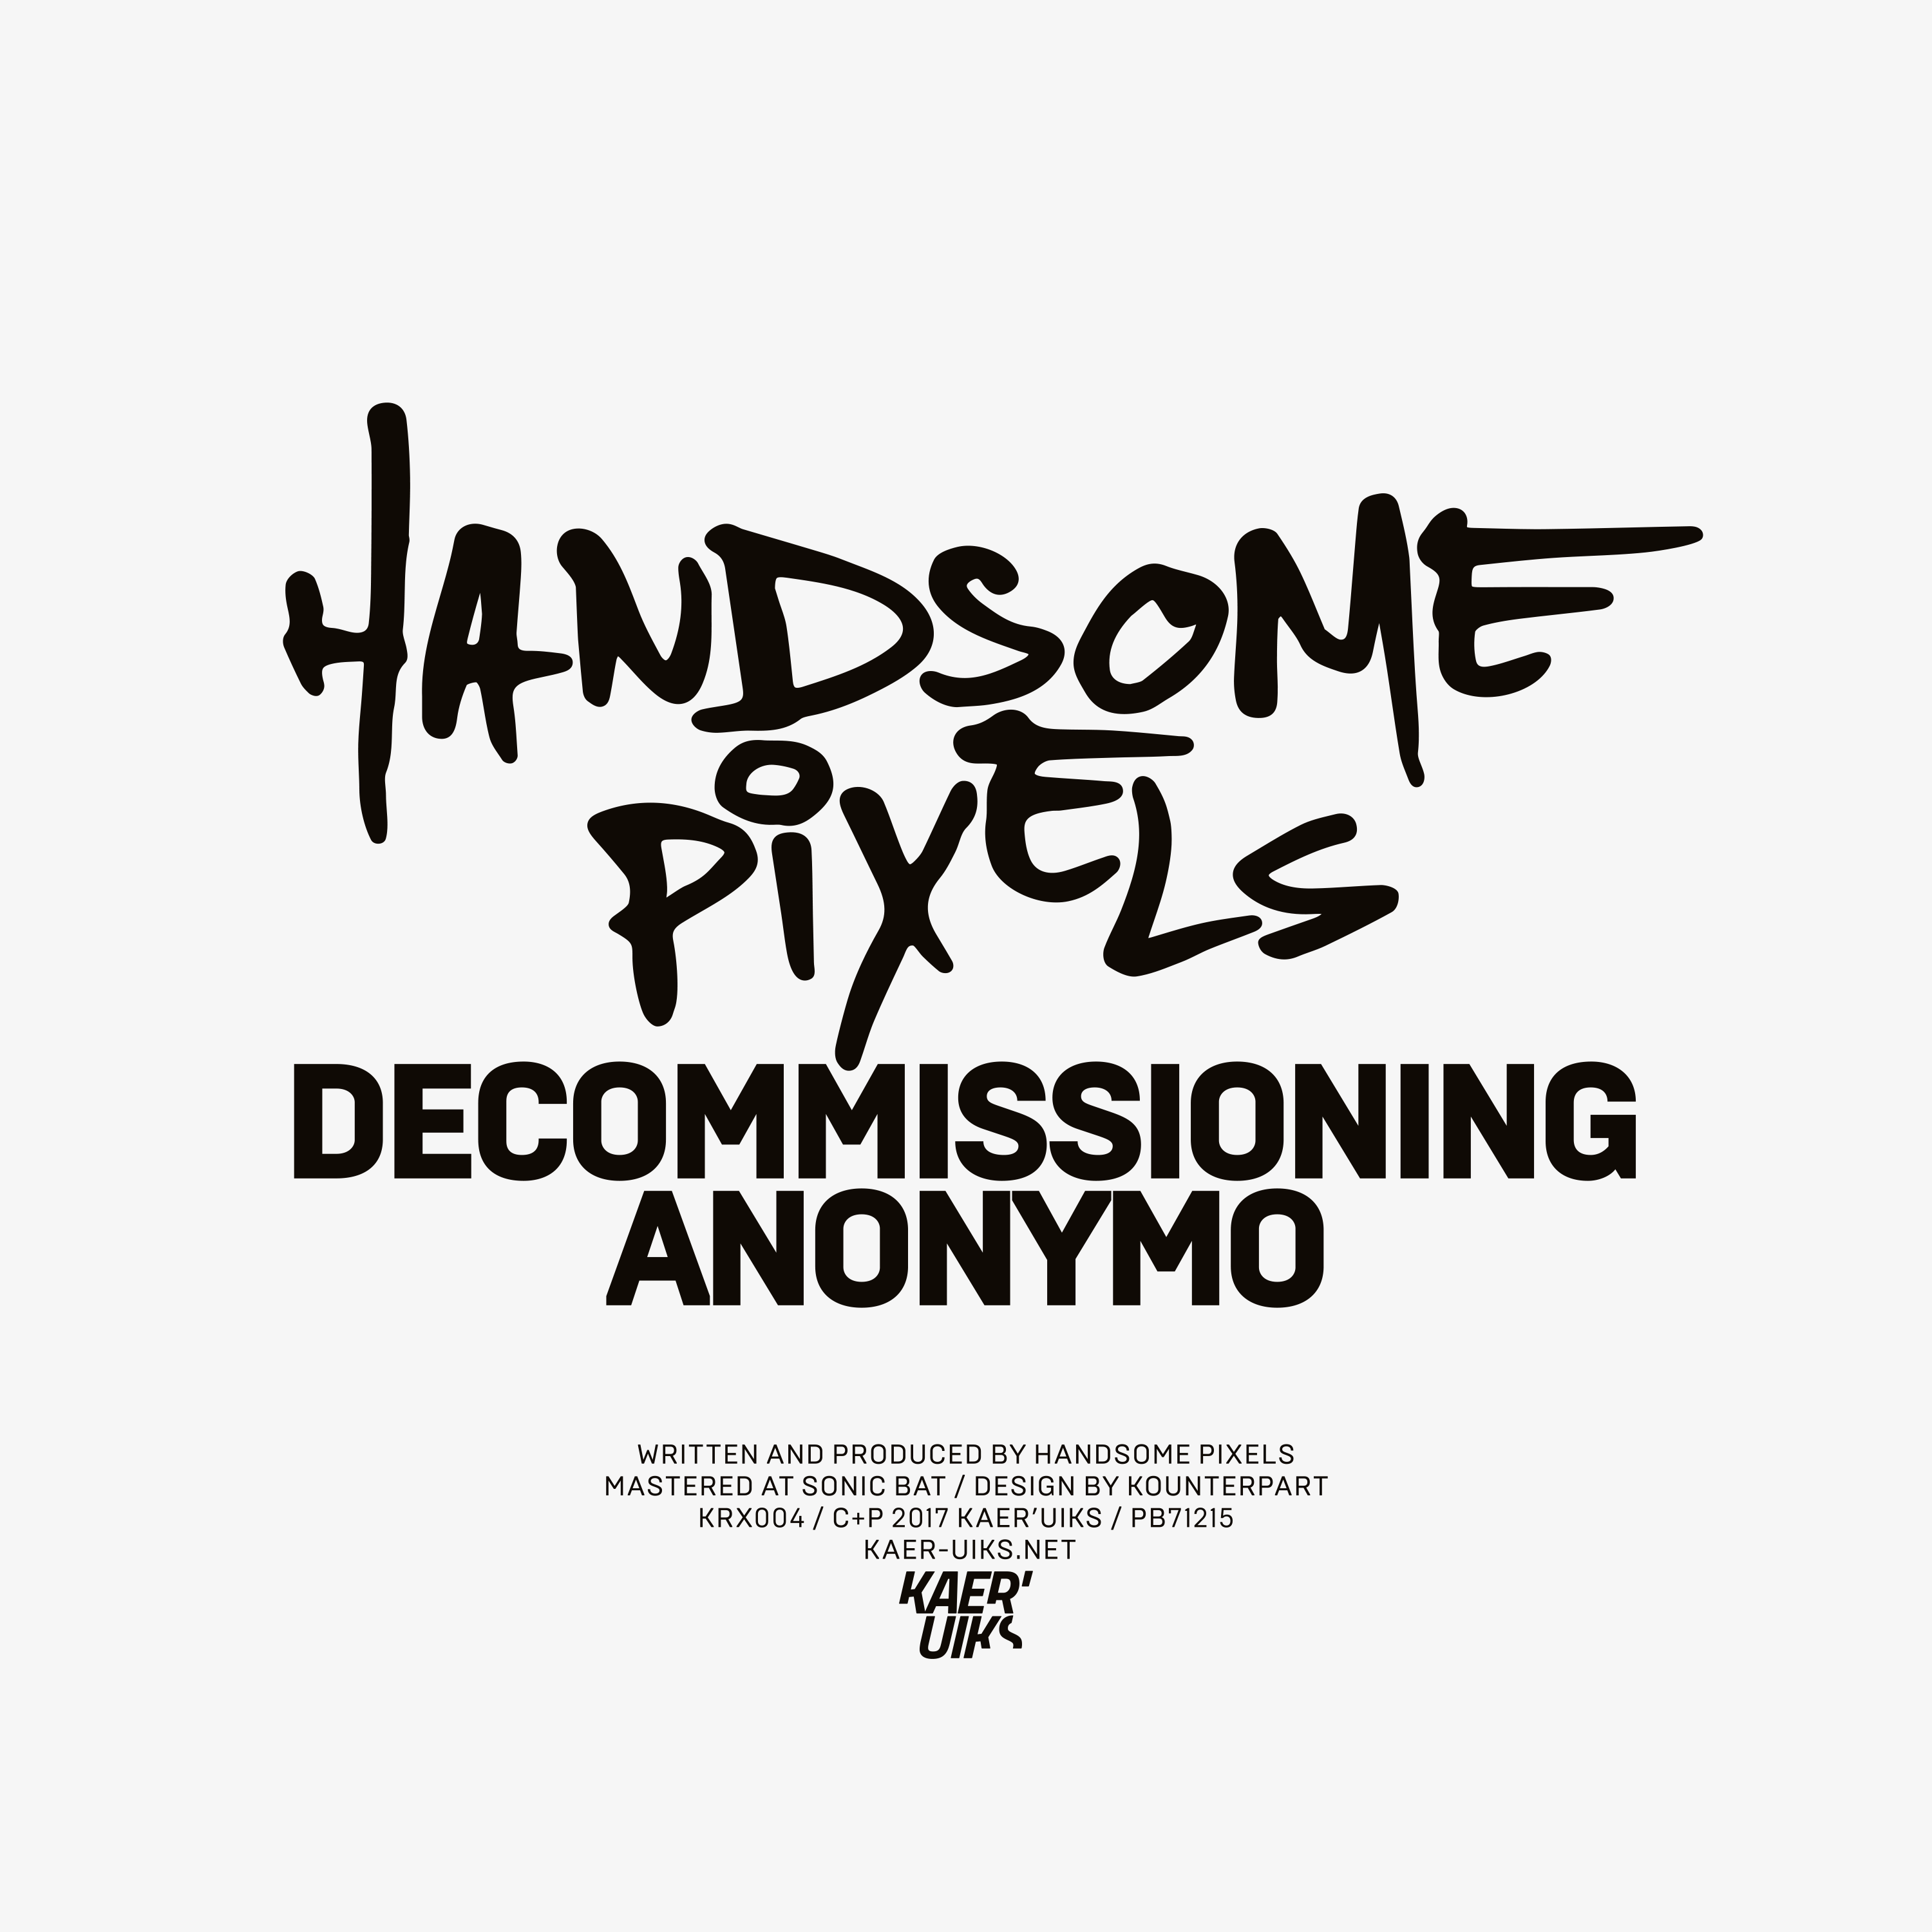 Handsome-Pixels_Decommissioning-Anonymo_kounterpart_Cover-B